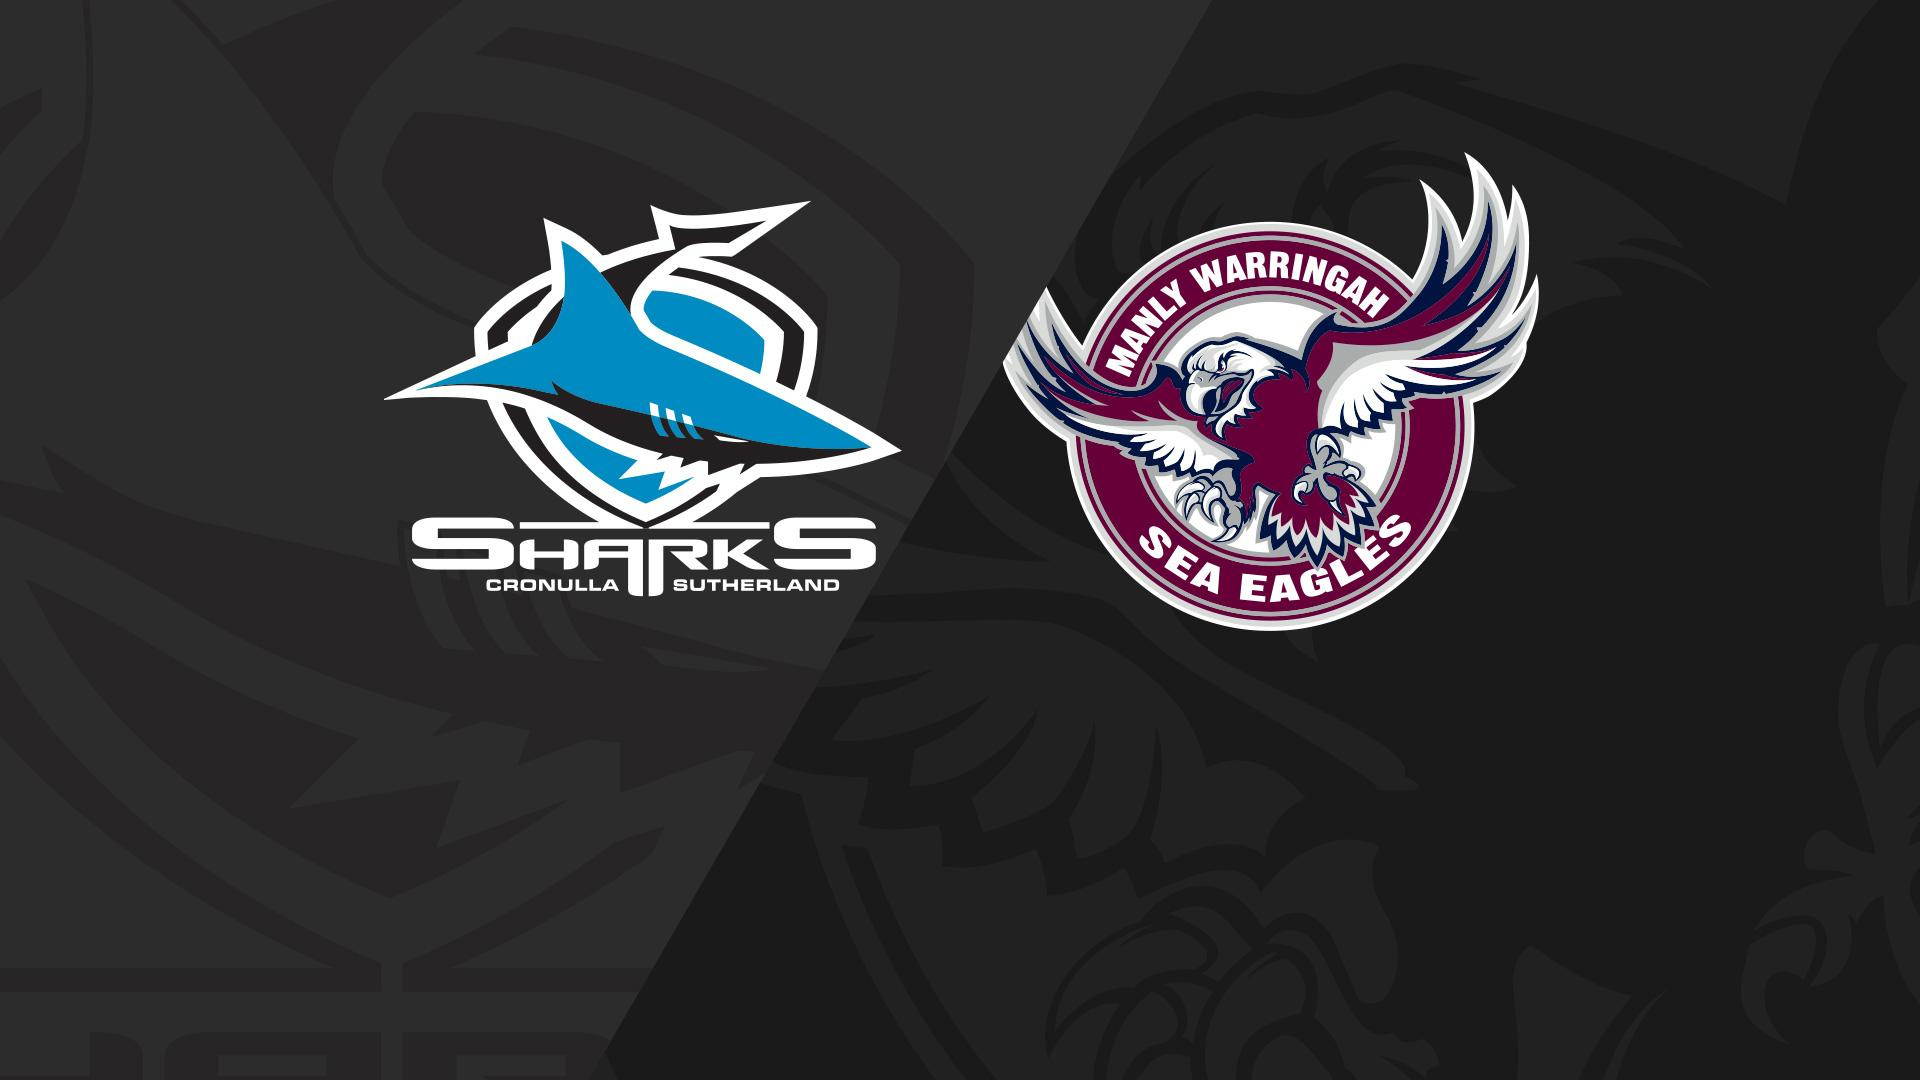 Full Match Replay: Sharks v Sea Eagles - Round 21, 2018